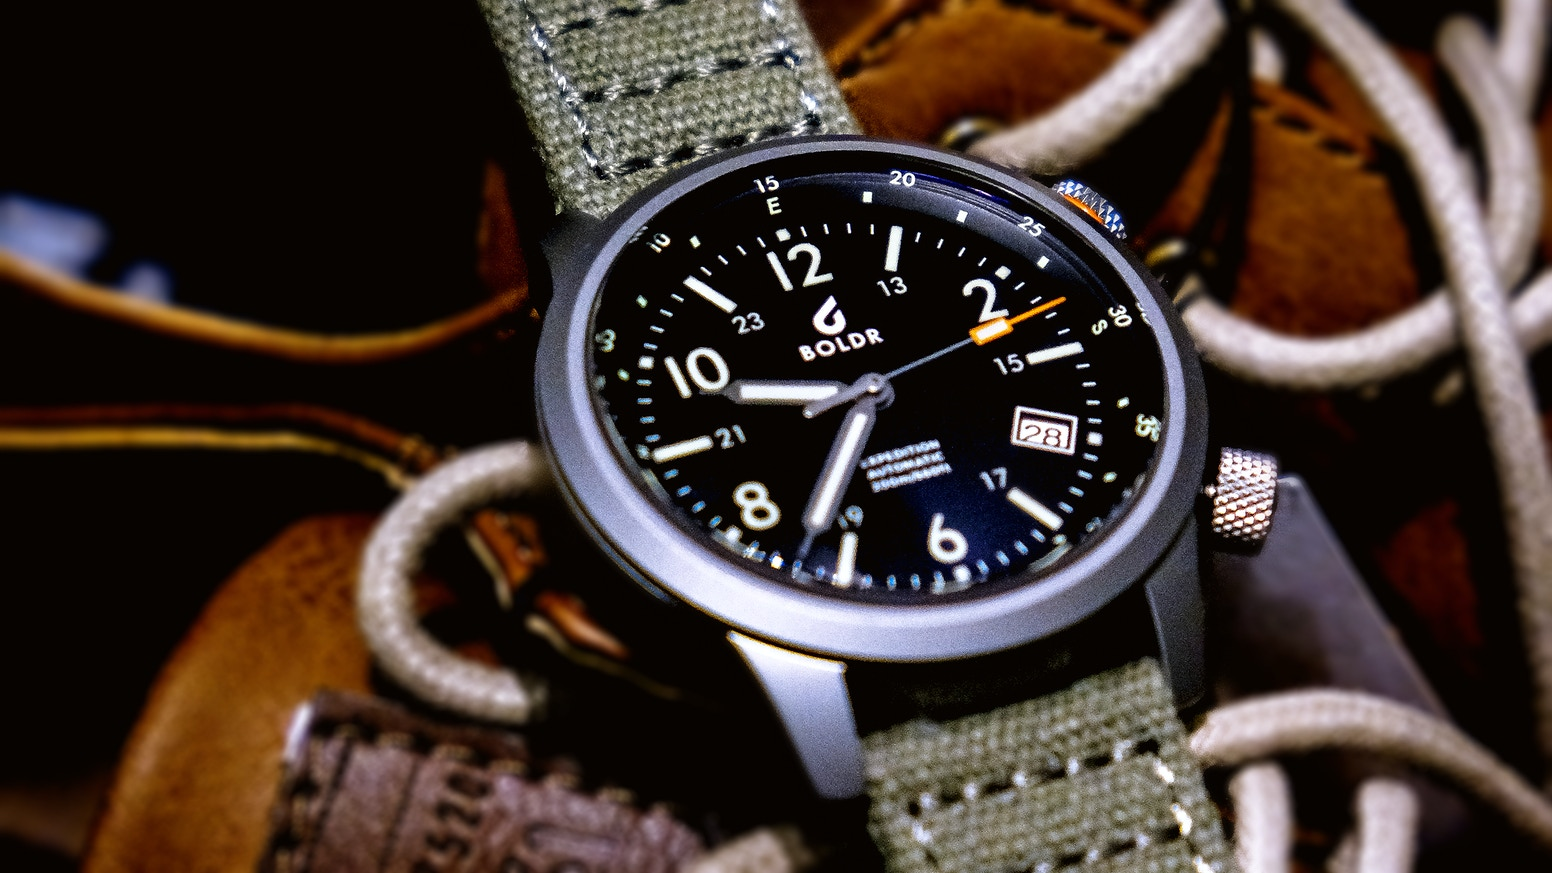 From where to wear, go afield with BOLDR Expedition Watch